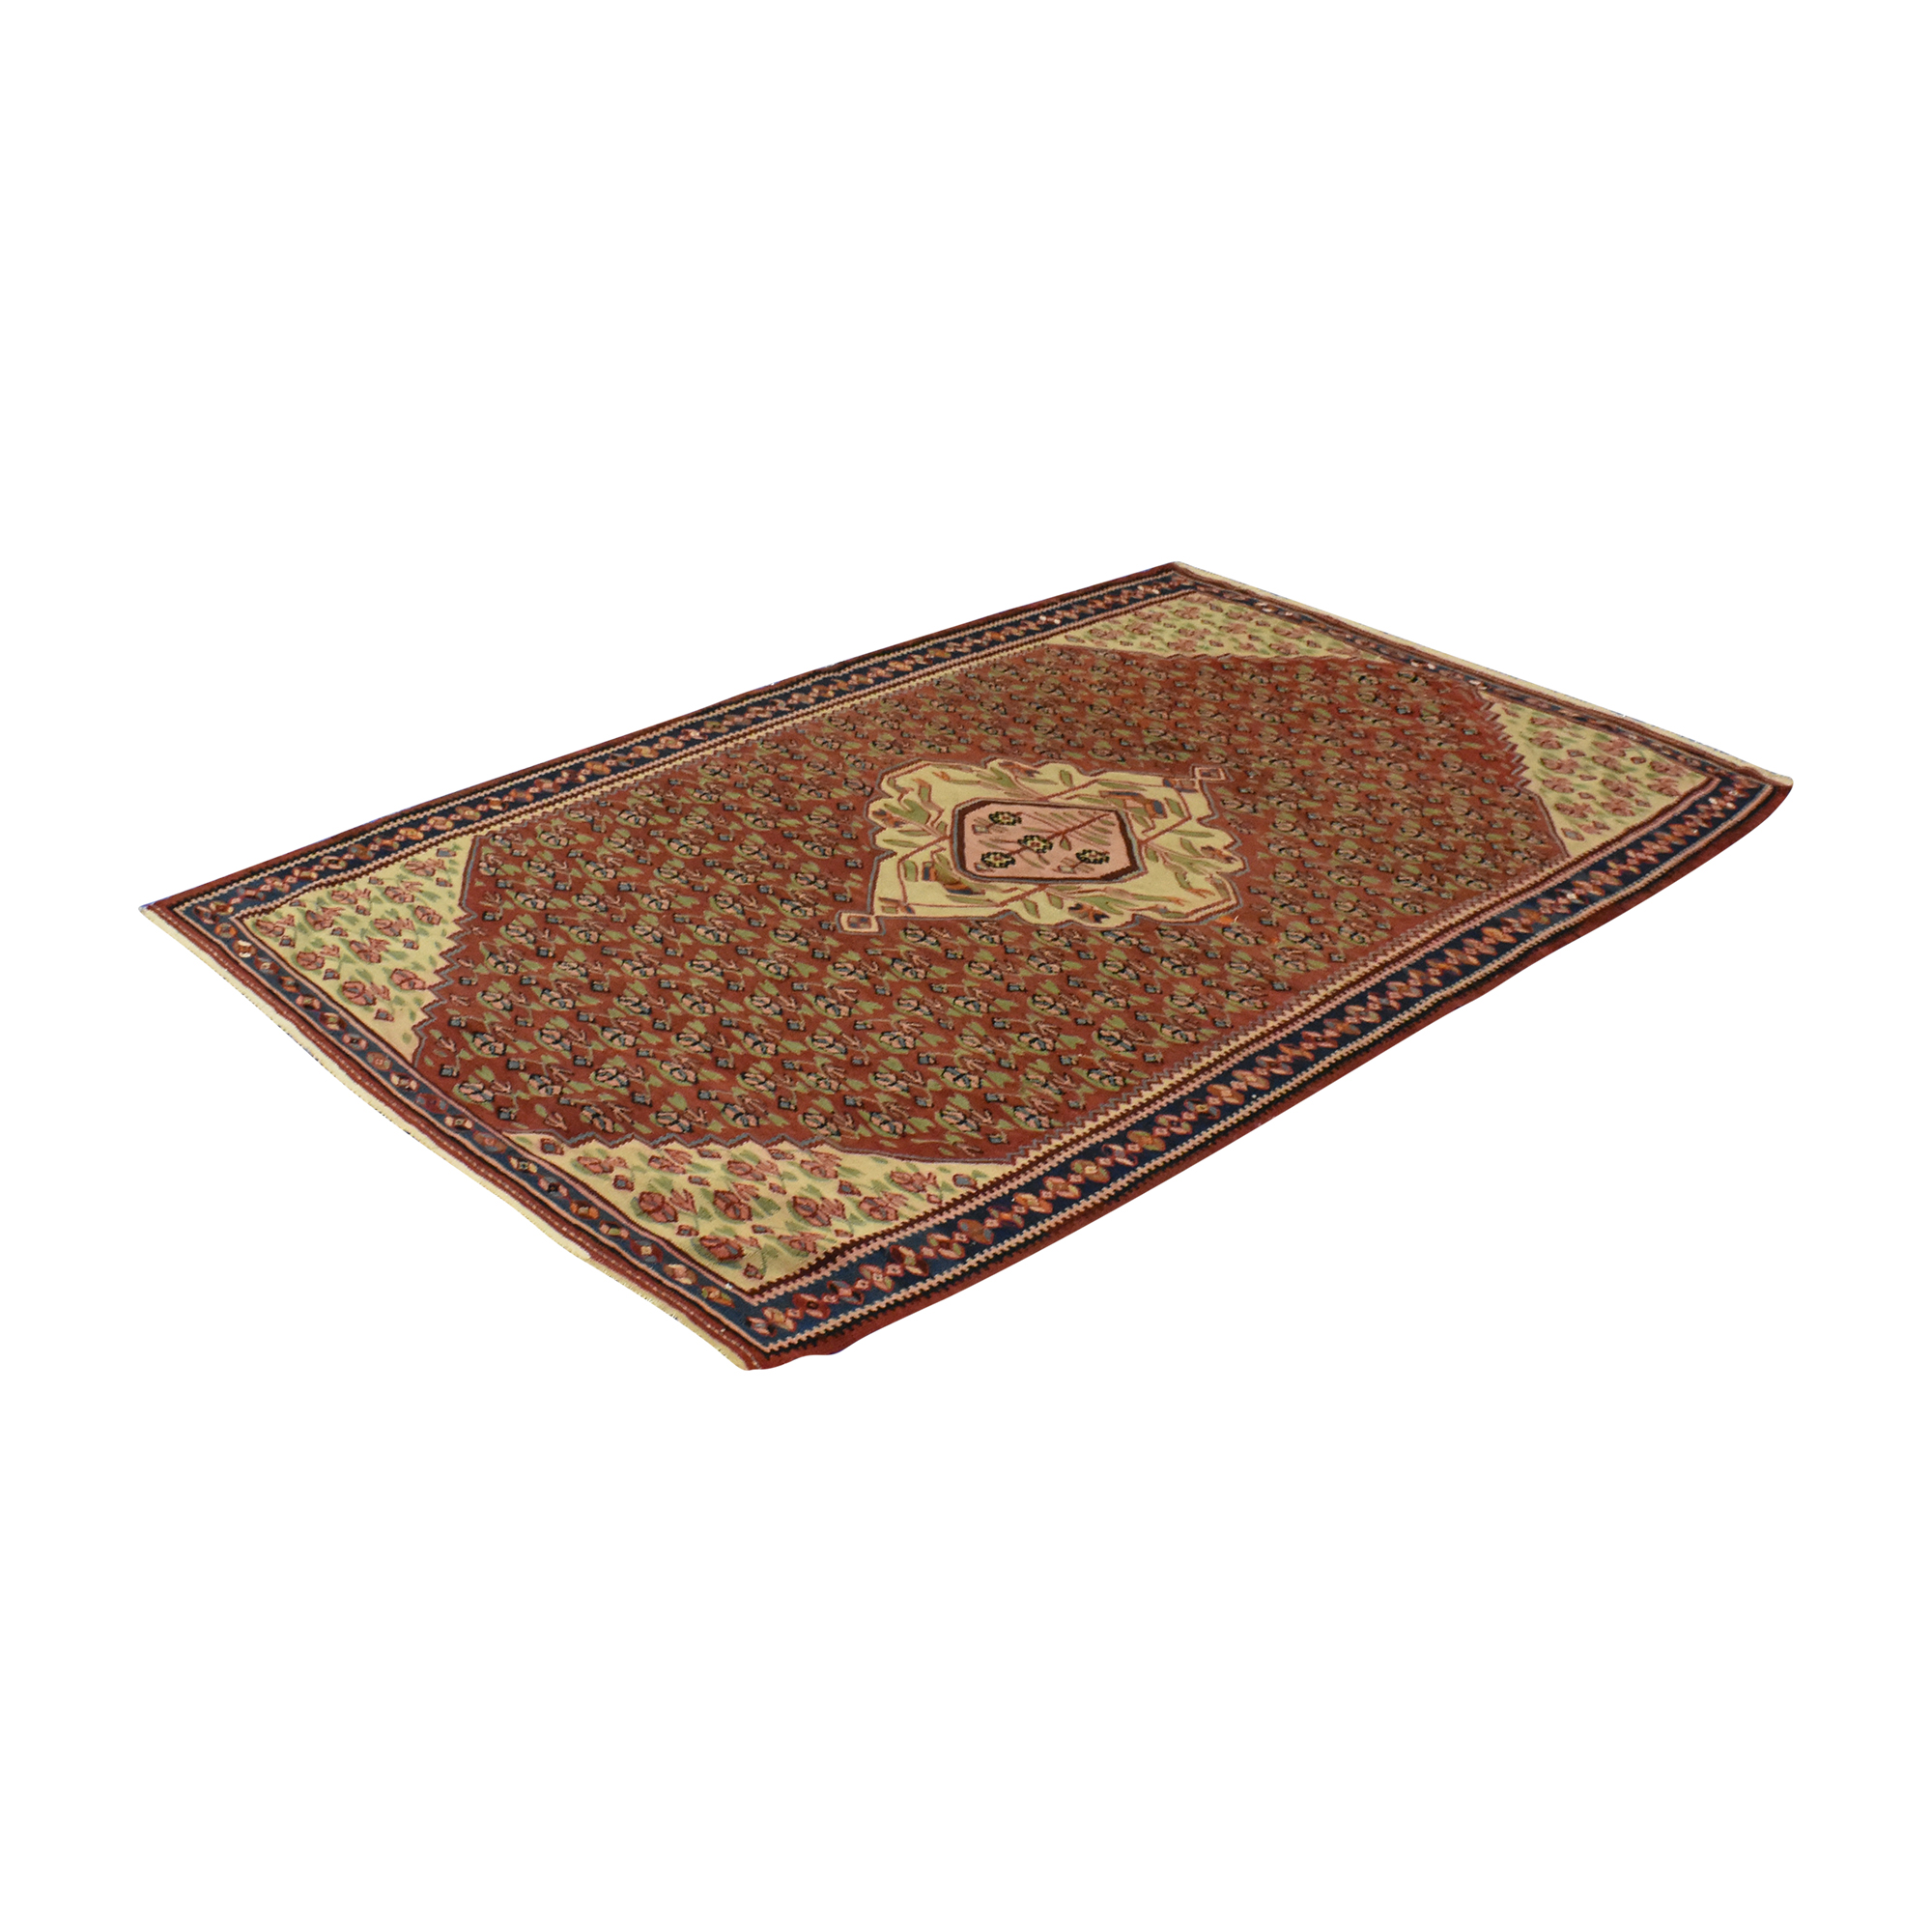 Patterned Area Rug second hand